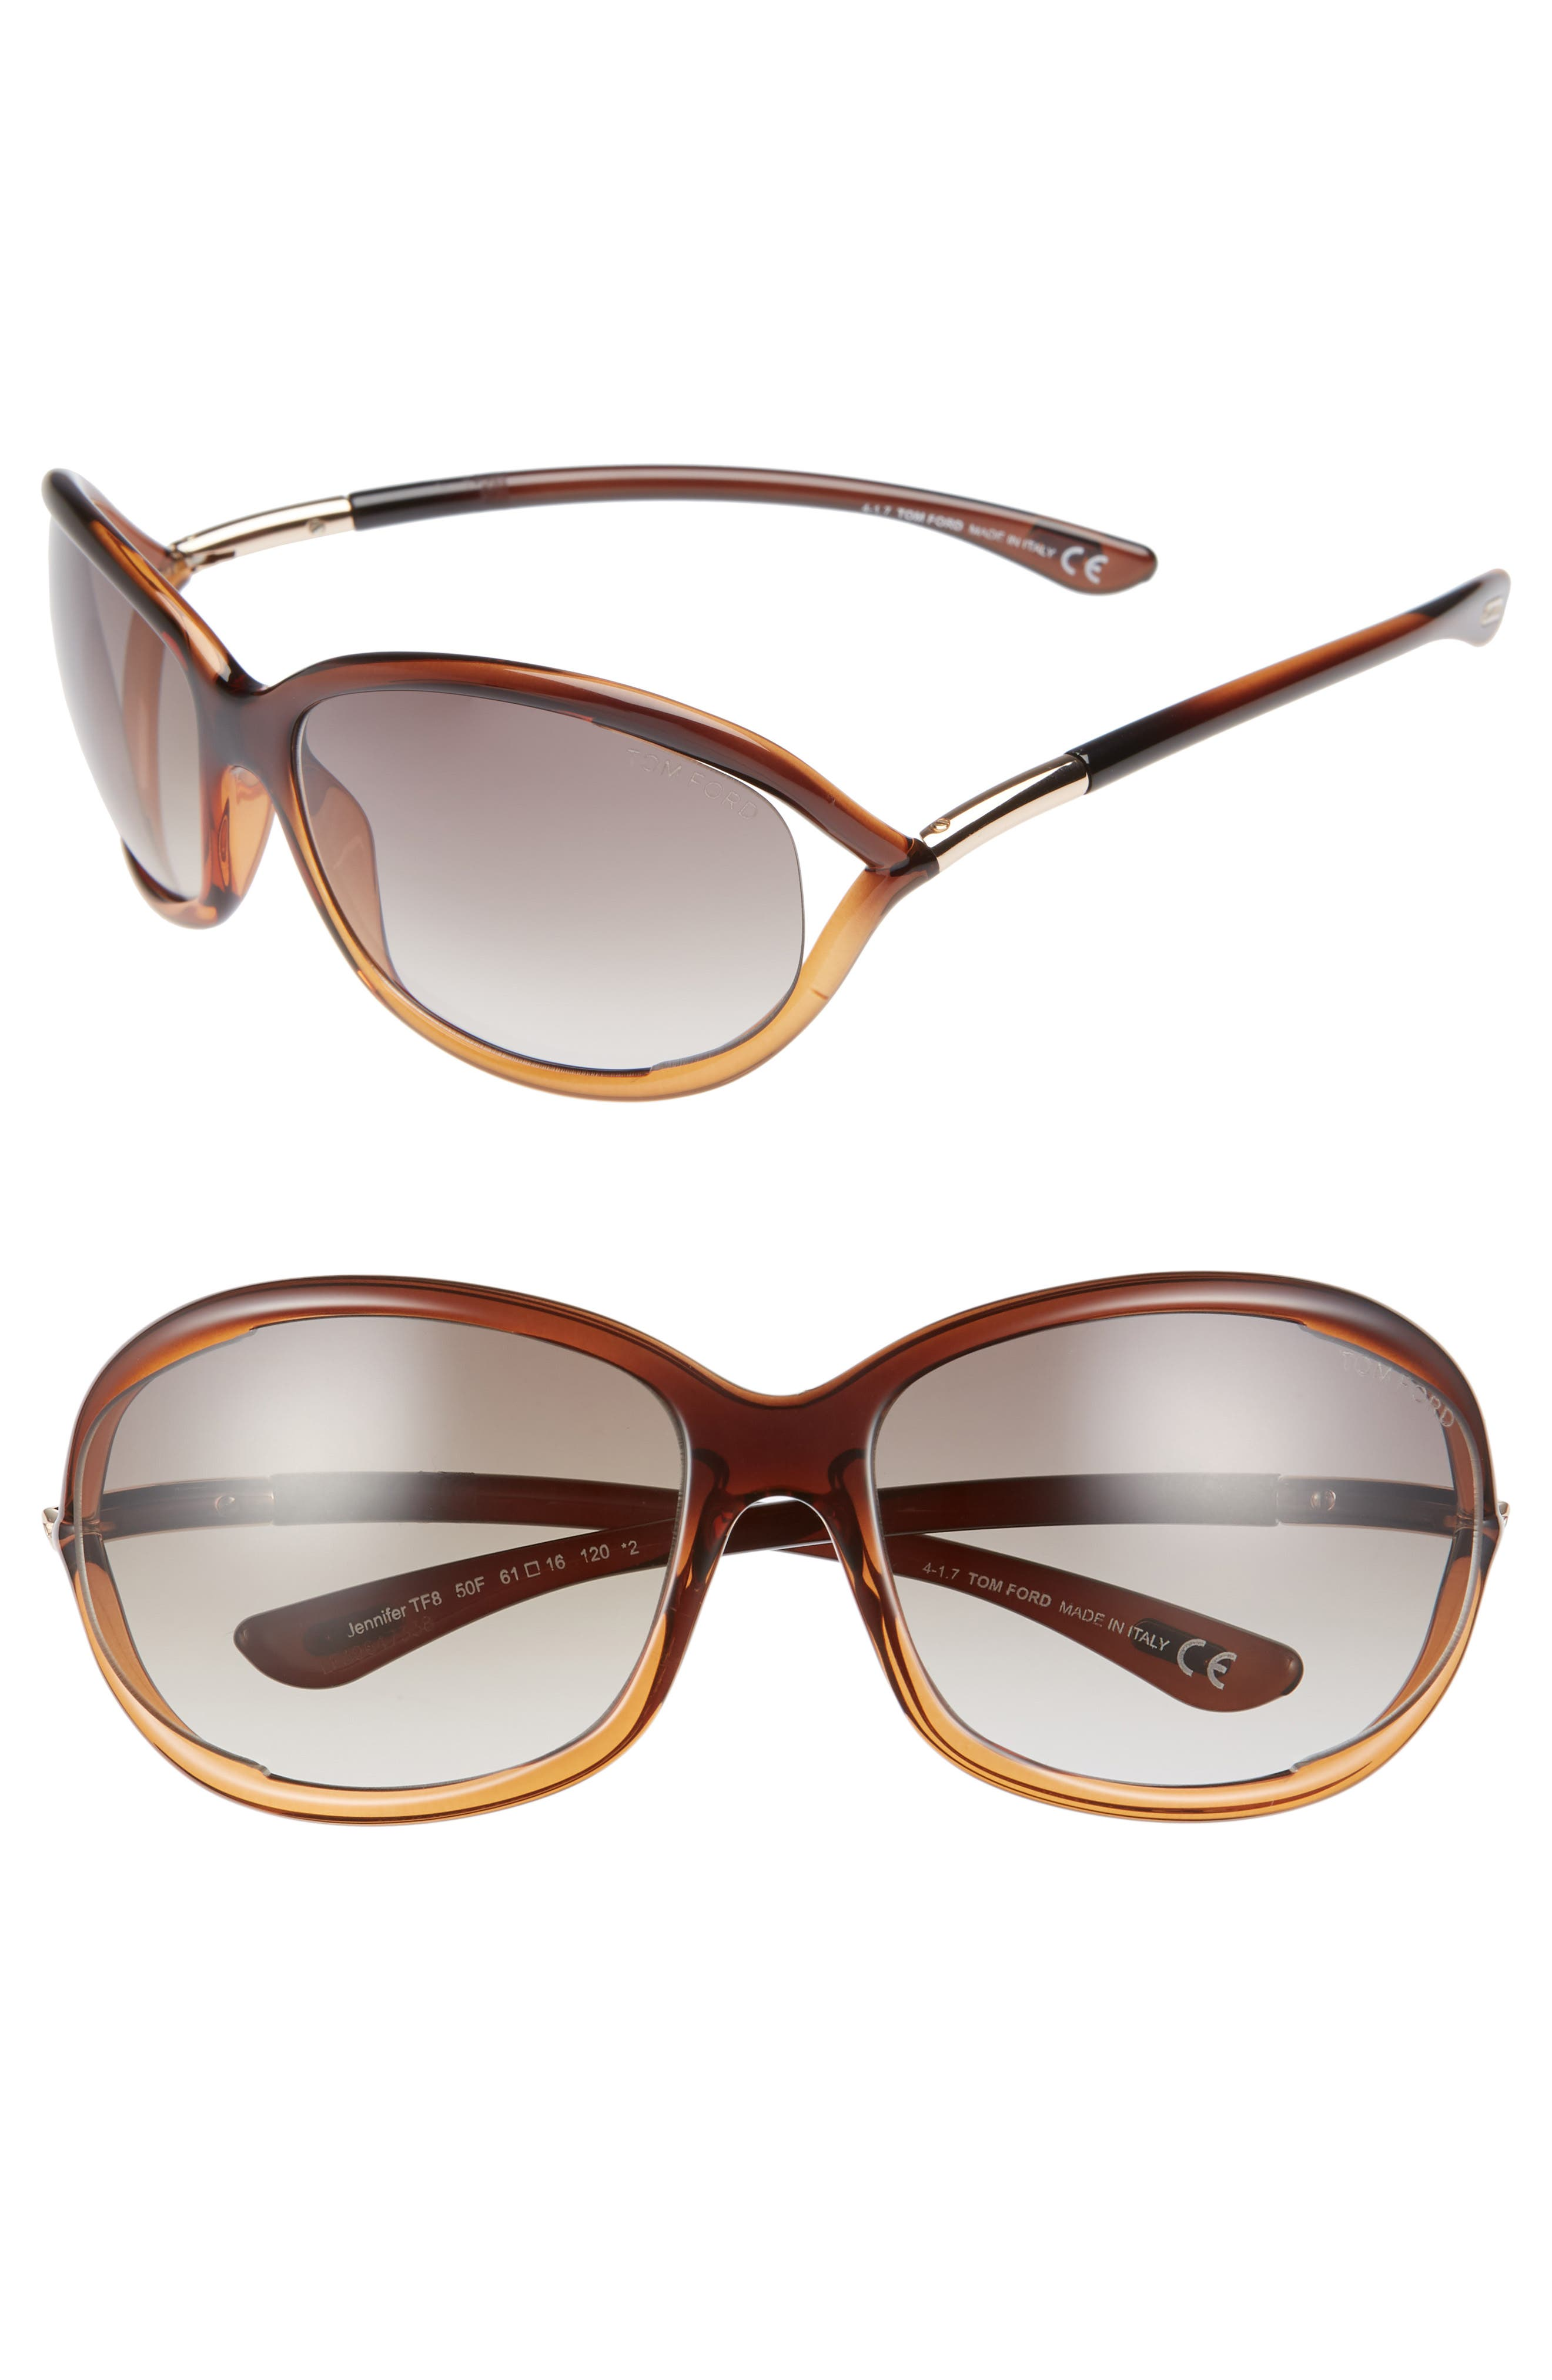 'Jennifer' 61mm Oval Oversize Frame Sunglasses,                             Main thumbnail 1, color,                             BROWN GRADIENT/ LIGHT ORANGE